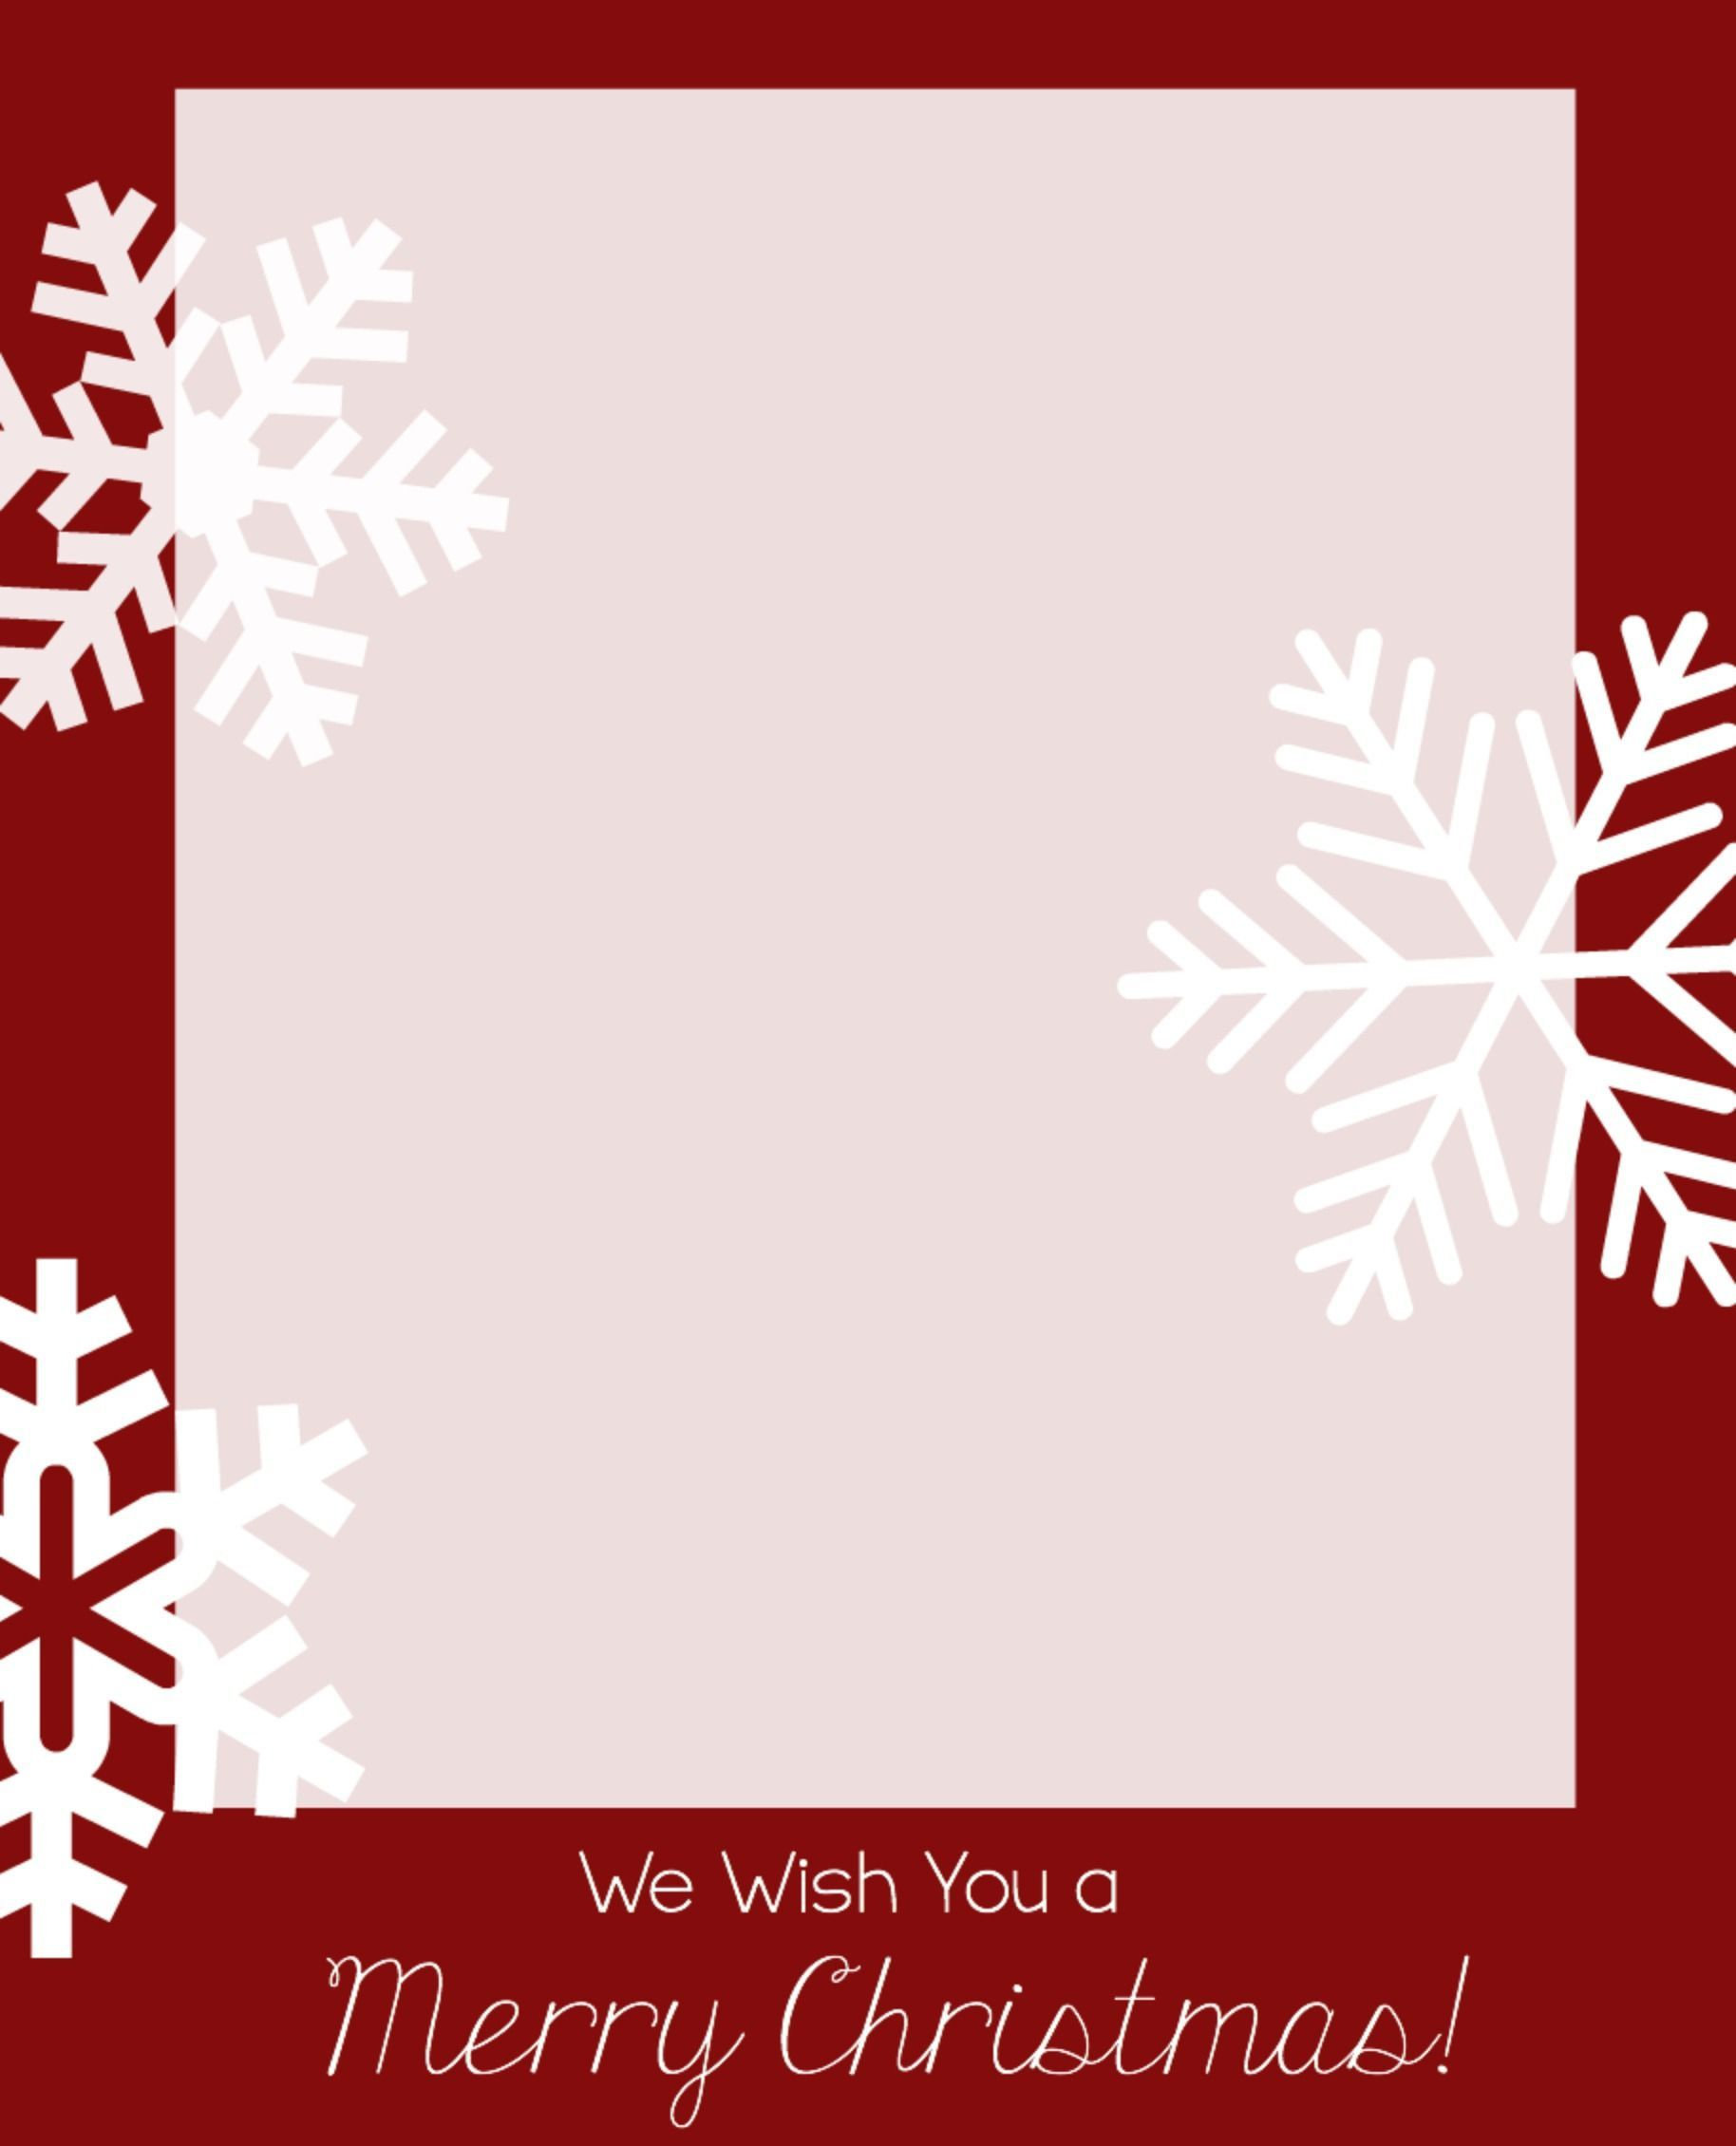 003 Incredible Free Holiday Card Template Concept  Templates Printable Photo For WordFull